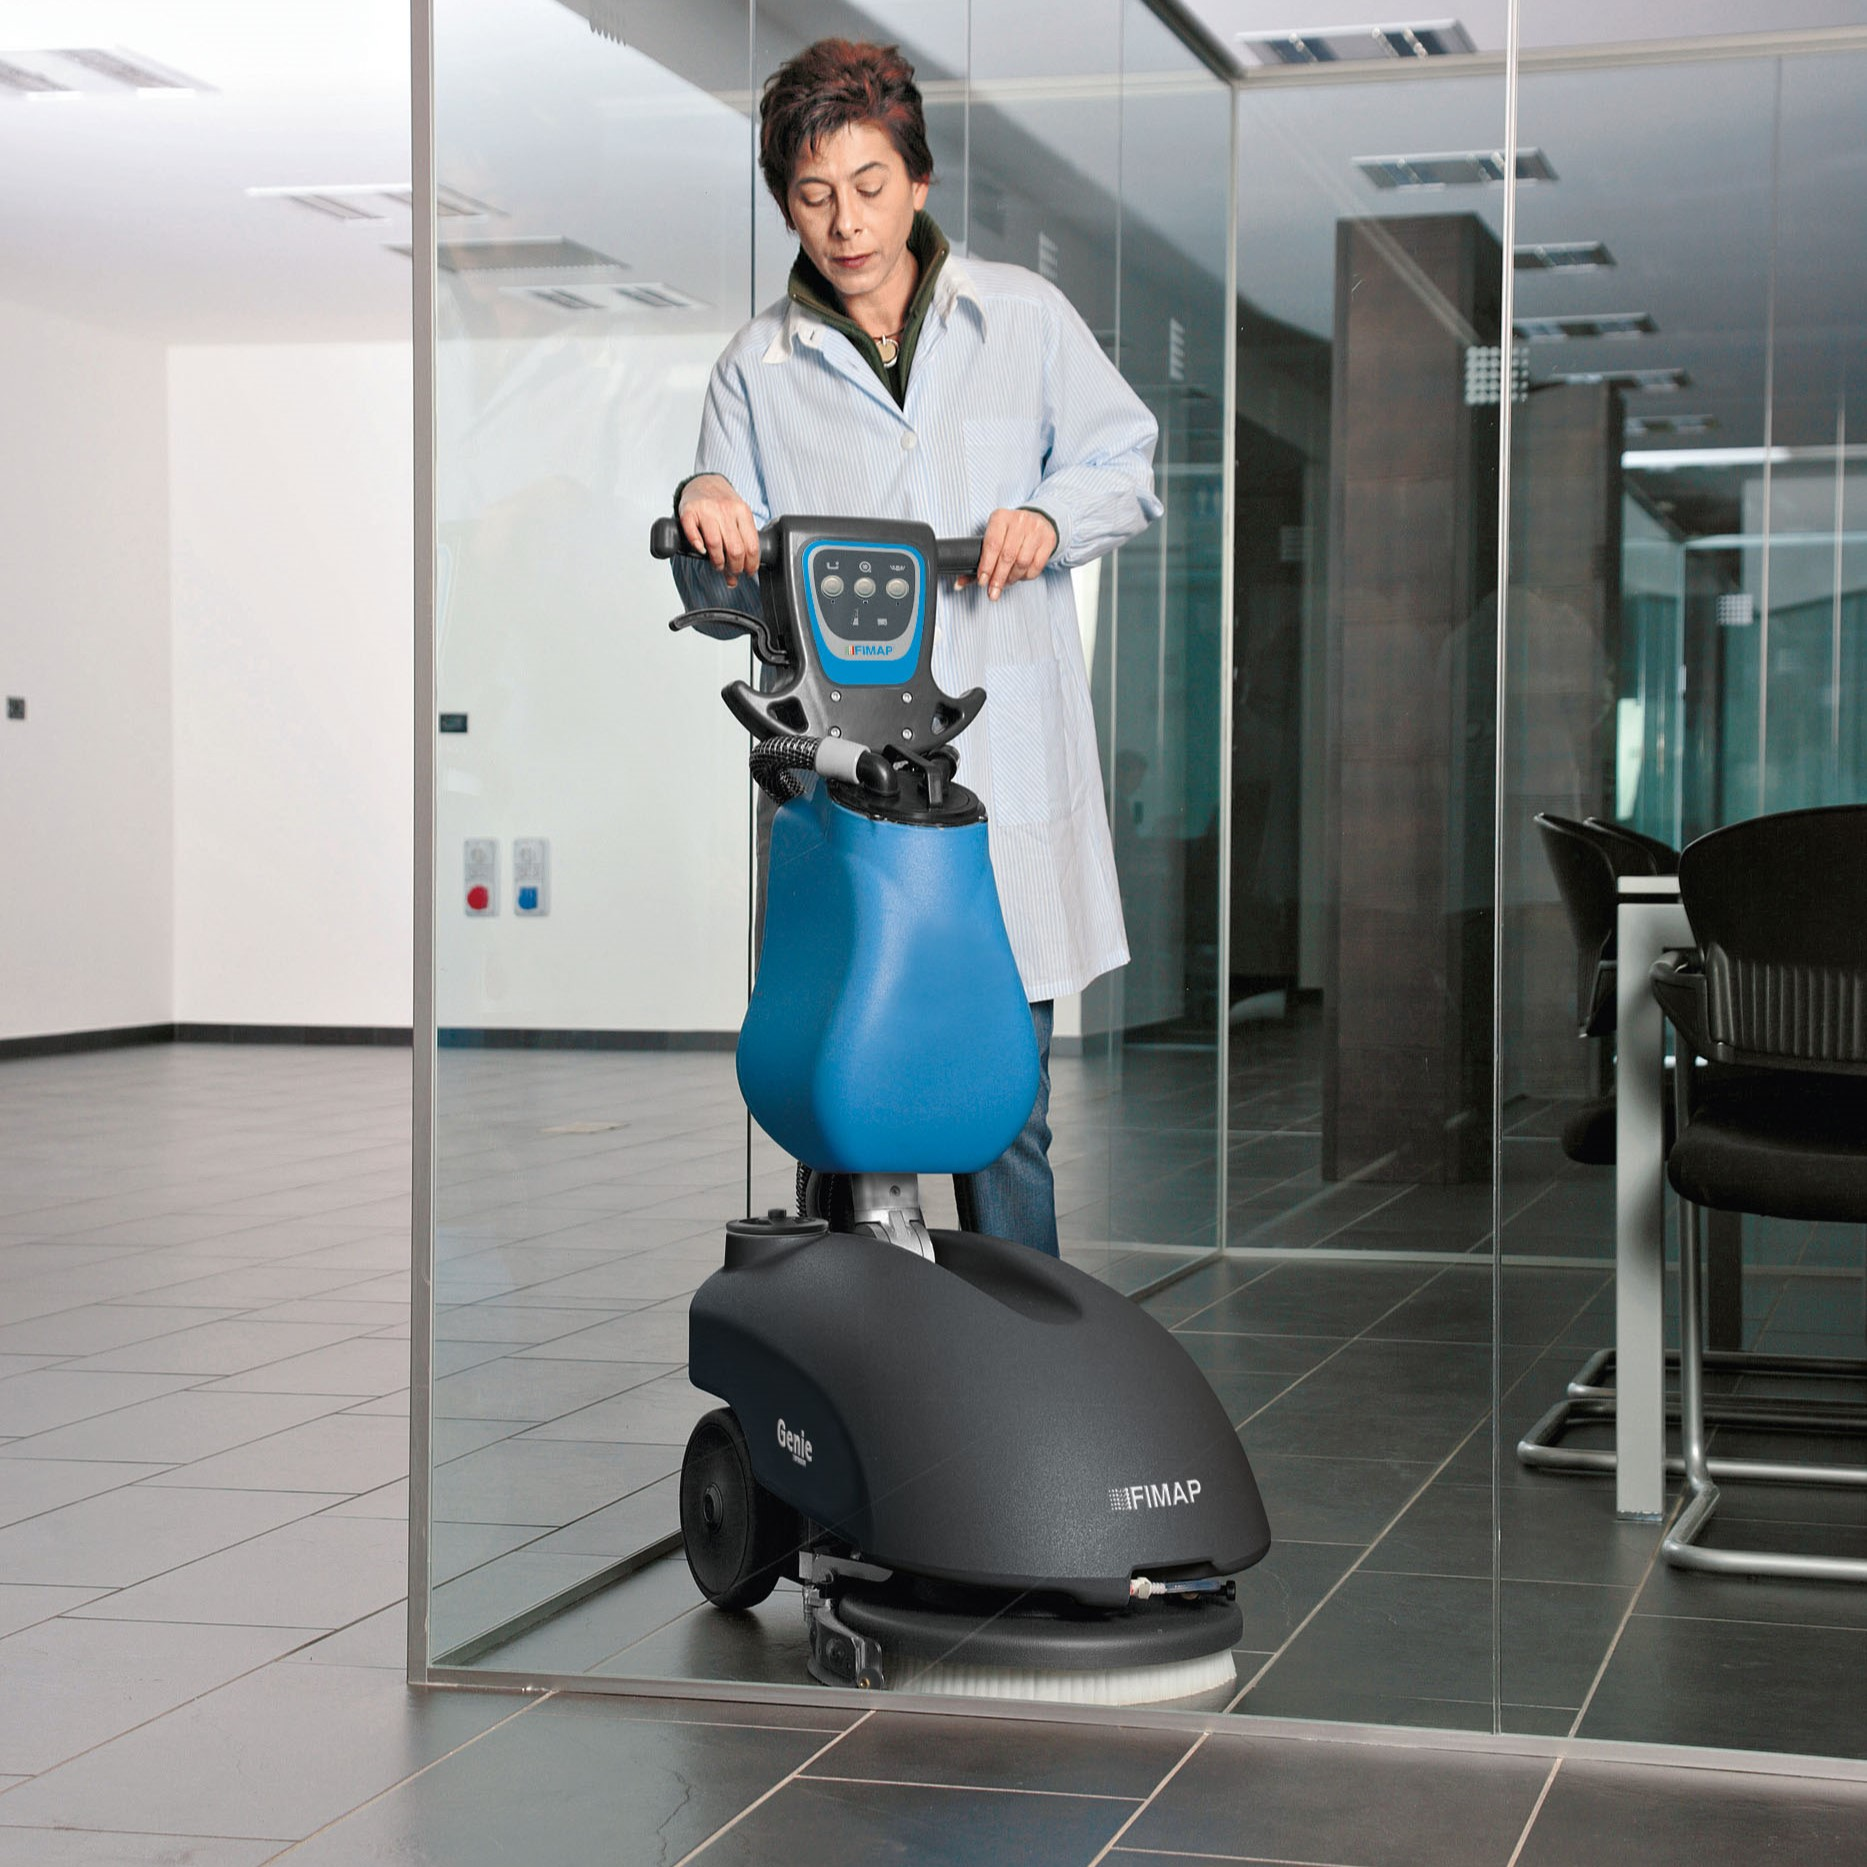 GENIE B Walk-Behind Scrubber Dryer